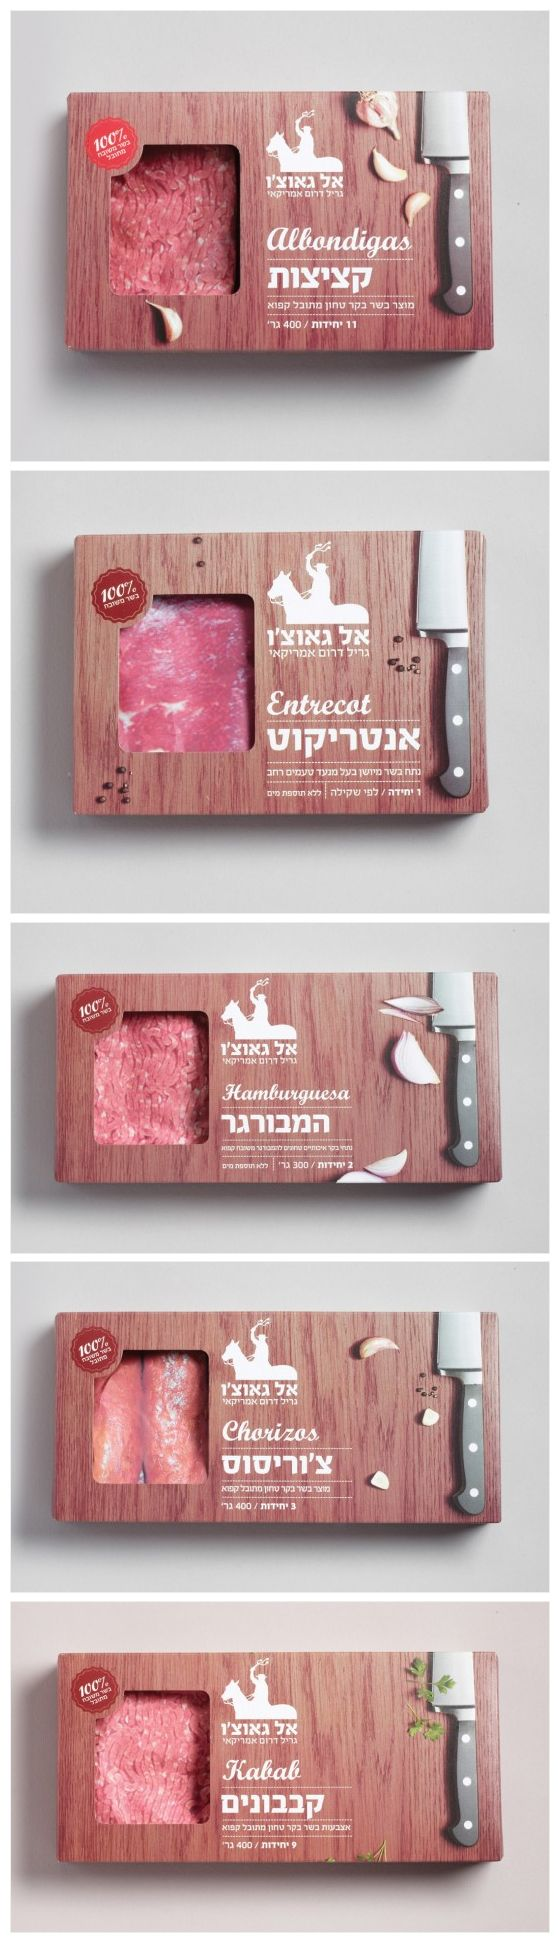 @Ramon here's the whole El Gaucho packaging series.